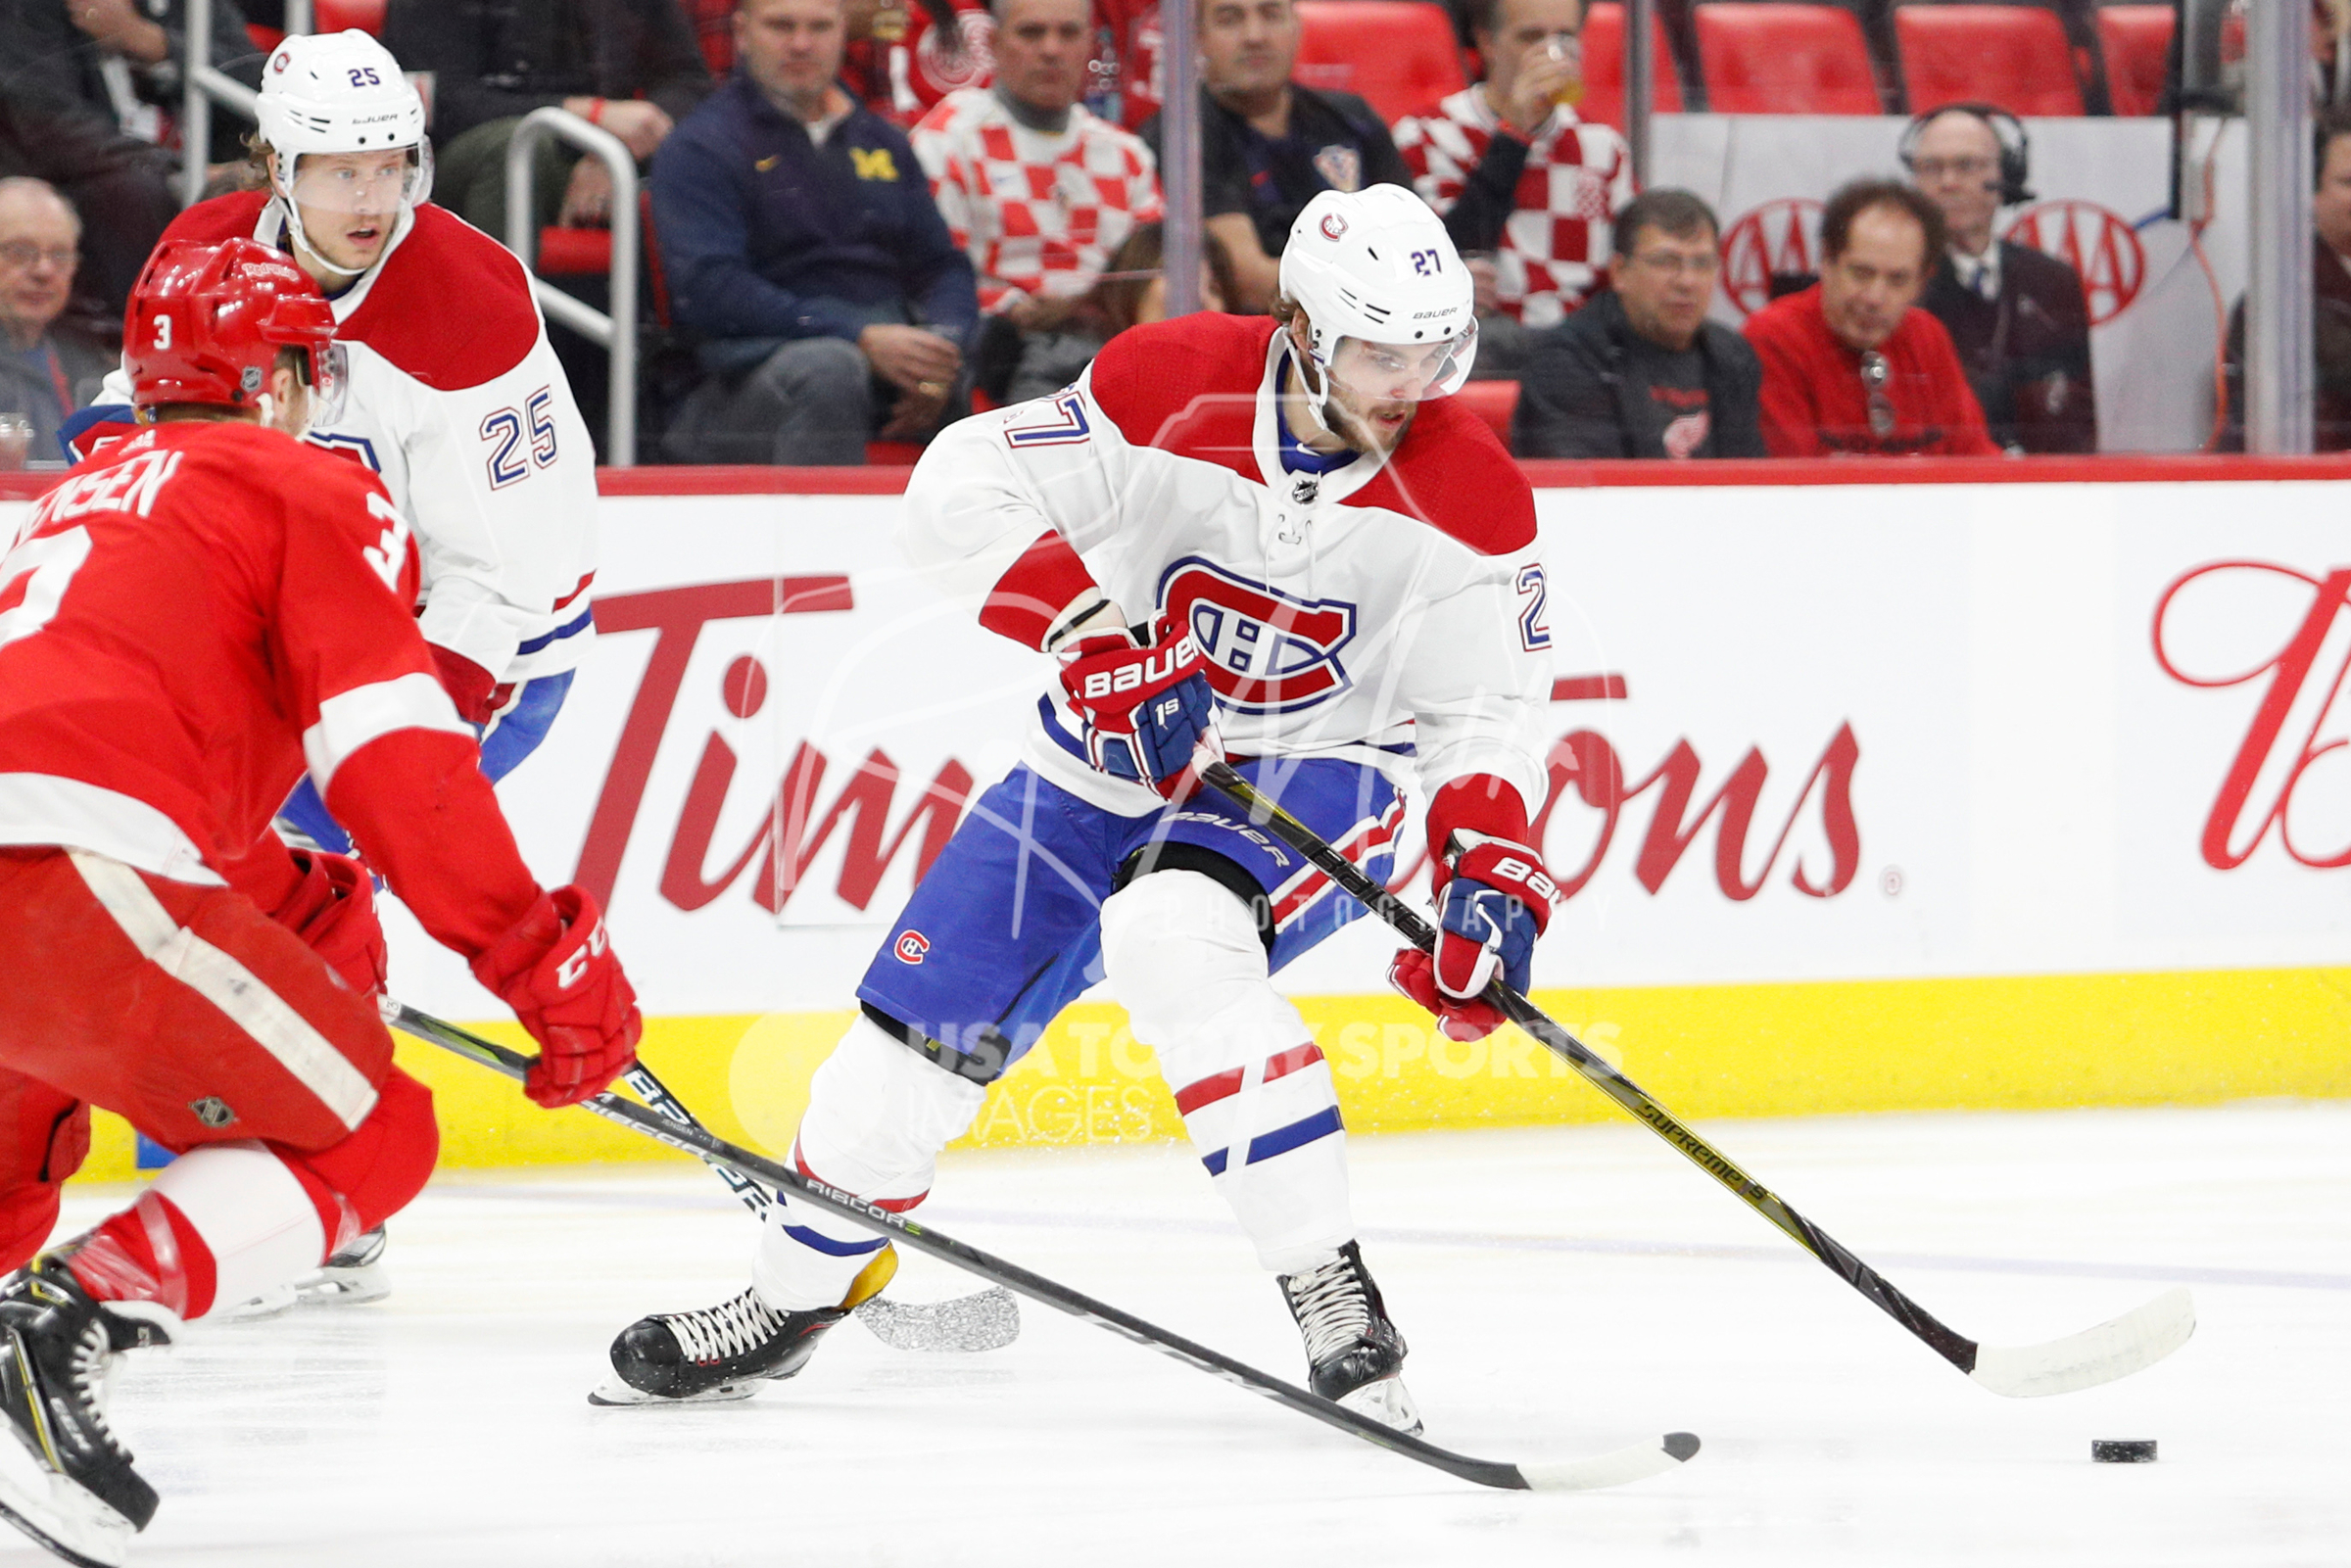 Apr 5, 2018; Detroit, MI, USA; Montreal Canadiens left wing Alex Galchenyuk (27) skates with the puck against Detroit Red Wings defenseman Nick Jensen (3) during the first period at Little Caesars Arena. Mandatory Credit: Raj Mehta-USA TODAY Sports